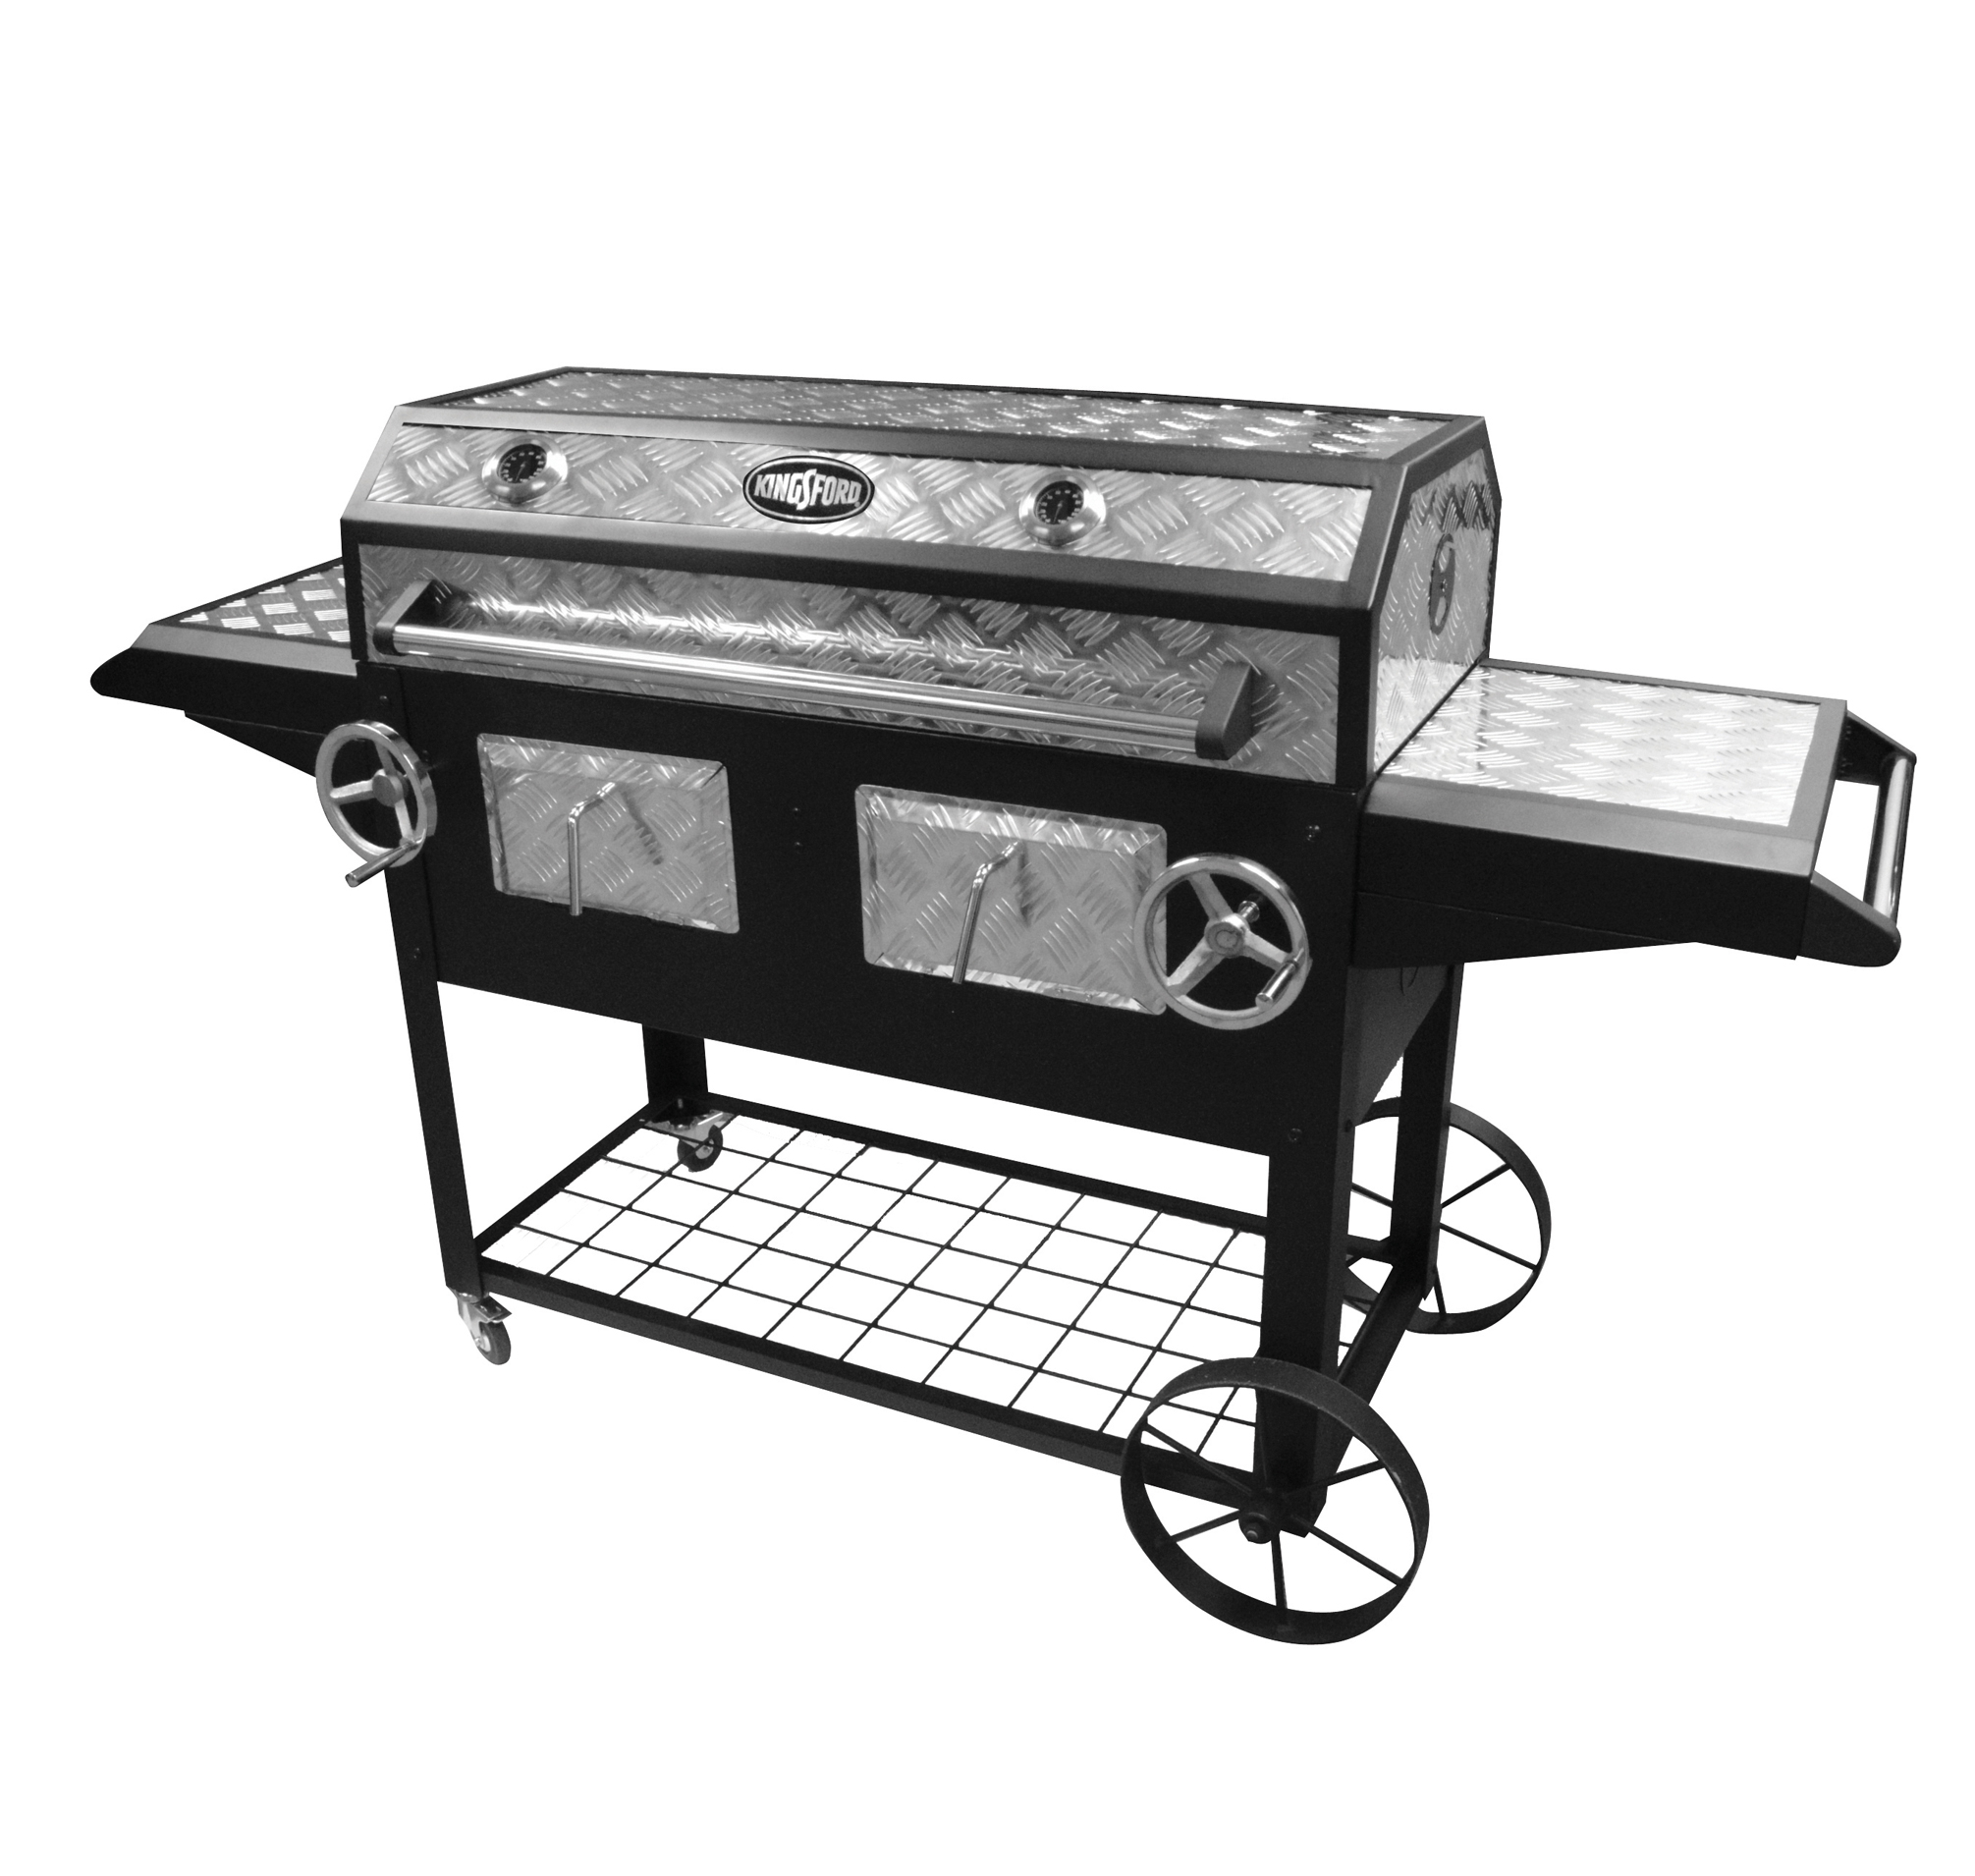 Heavy Duty Charcoal Barbecue : Welcome to rankam